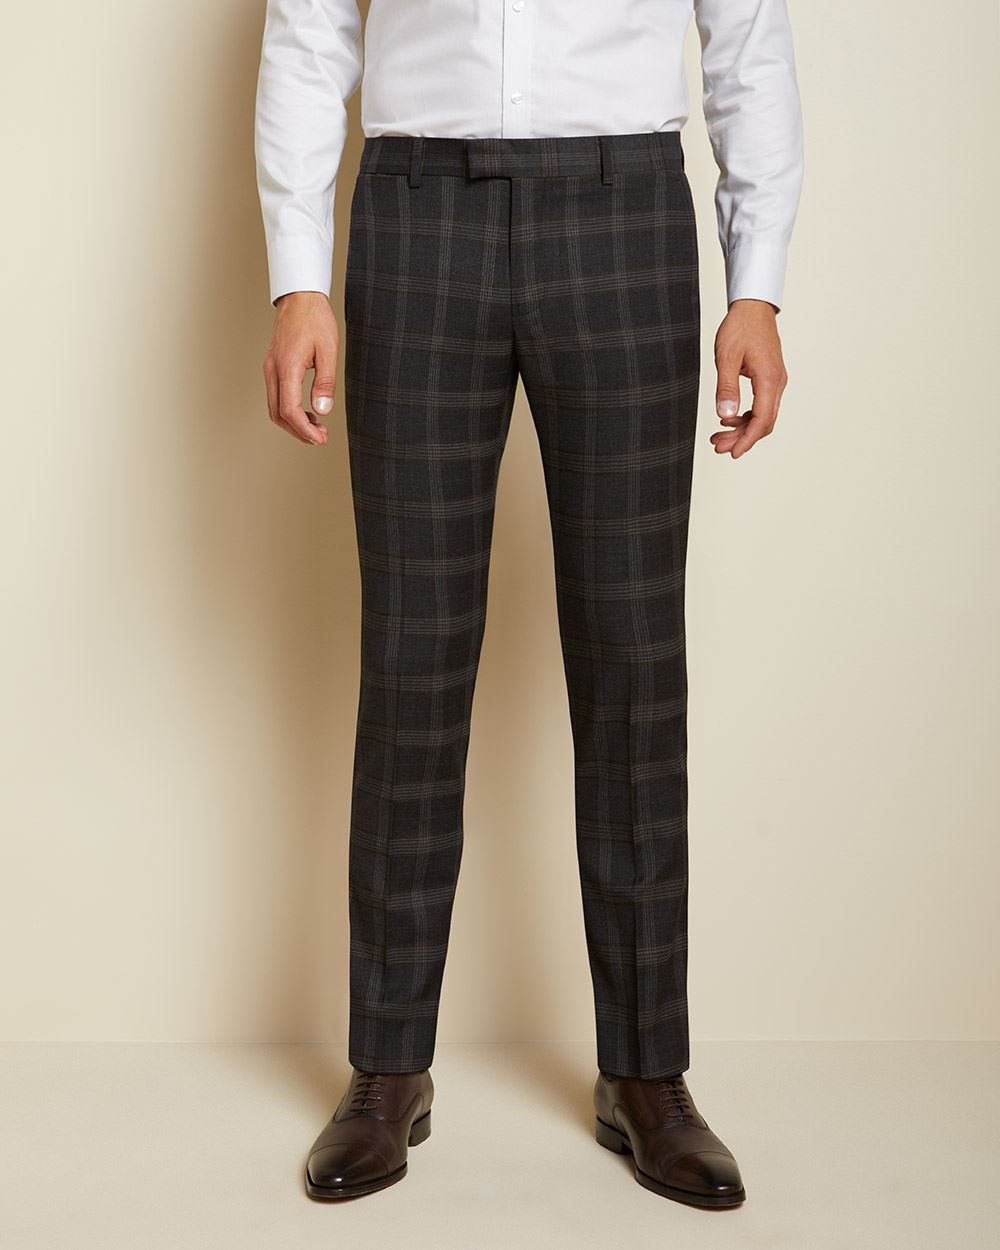 Slim Fit brown check suit pant